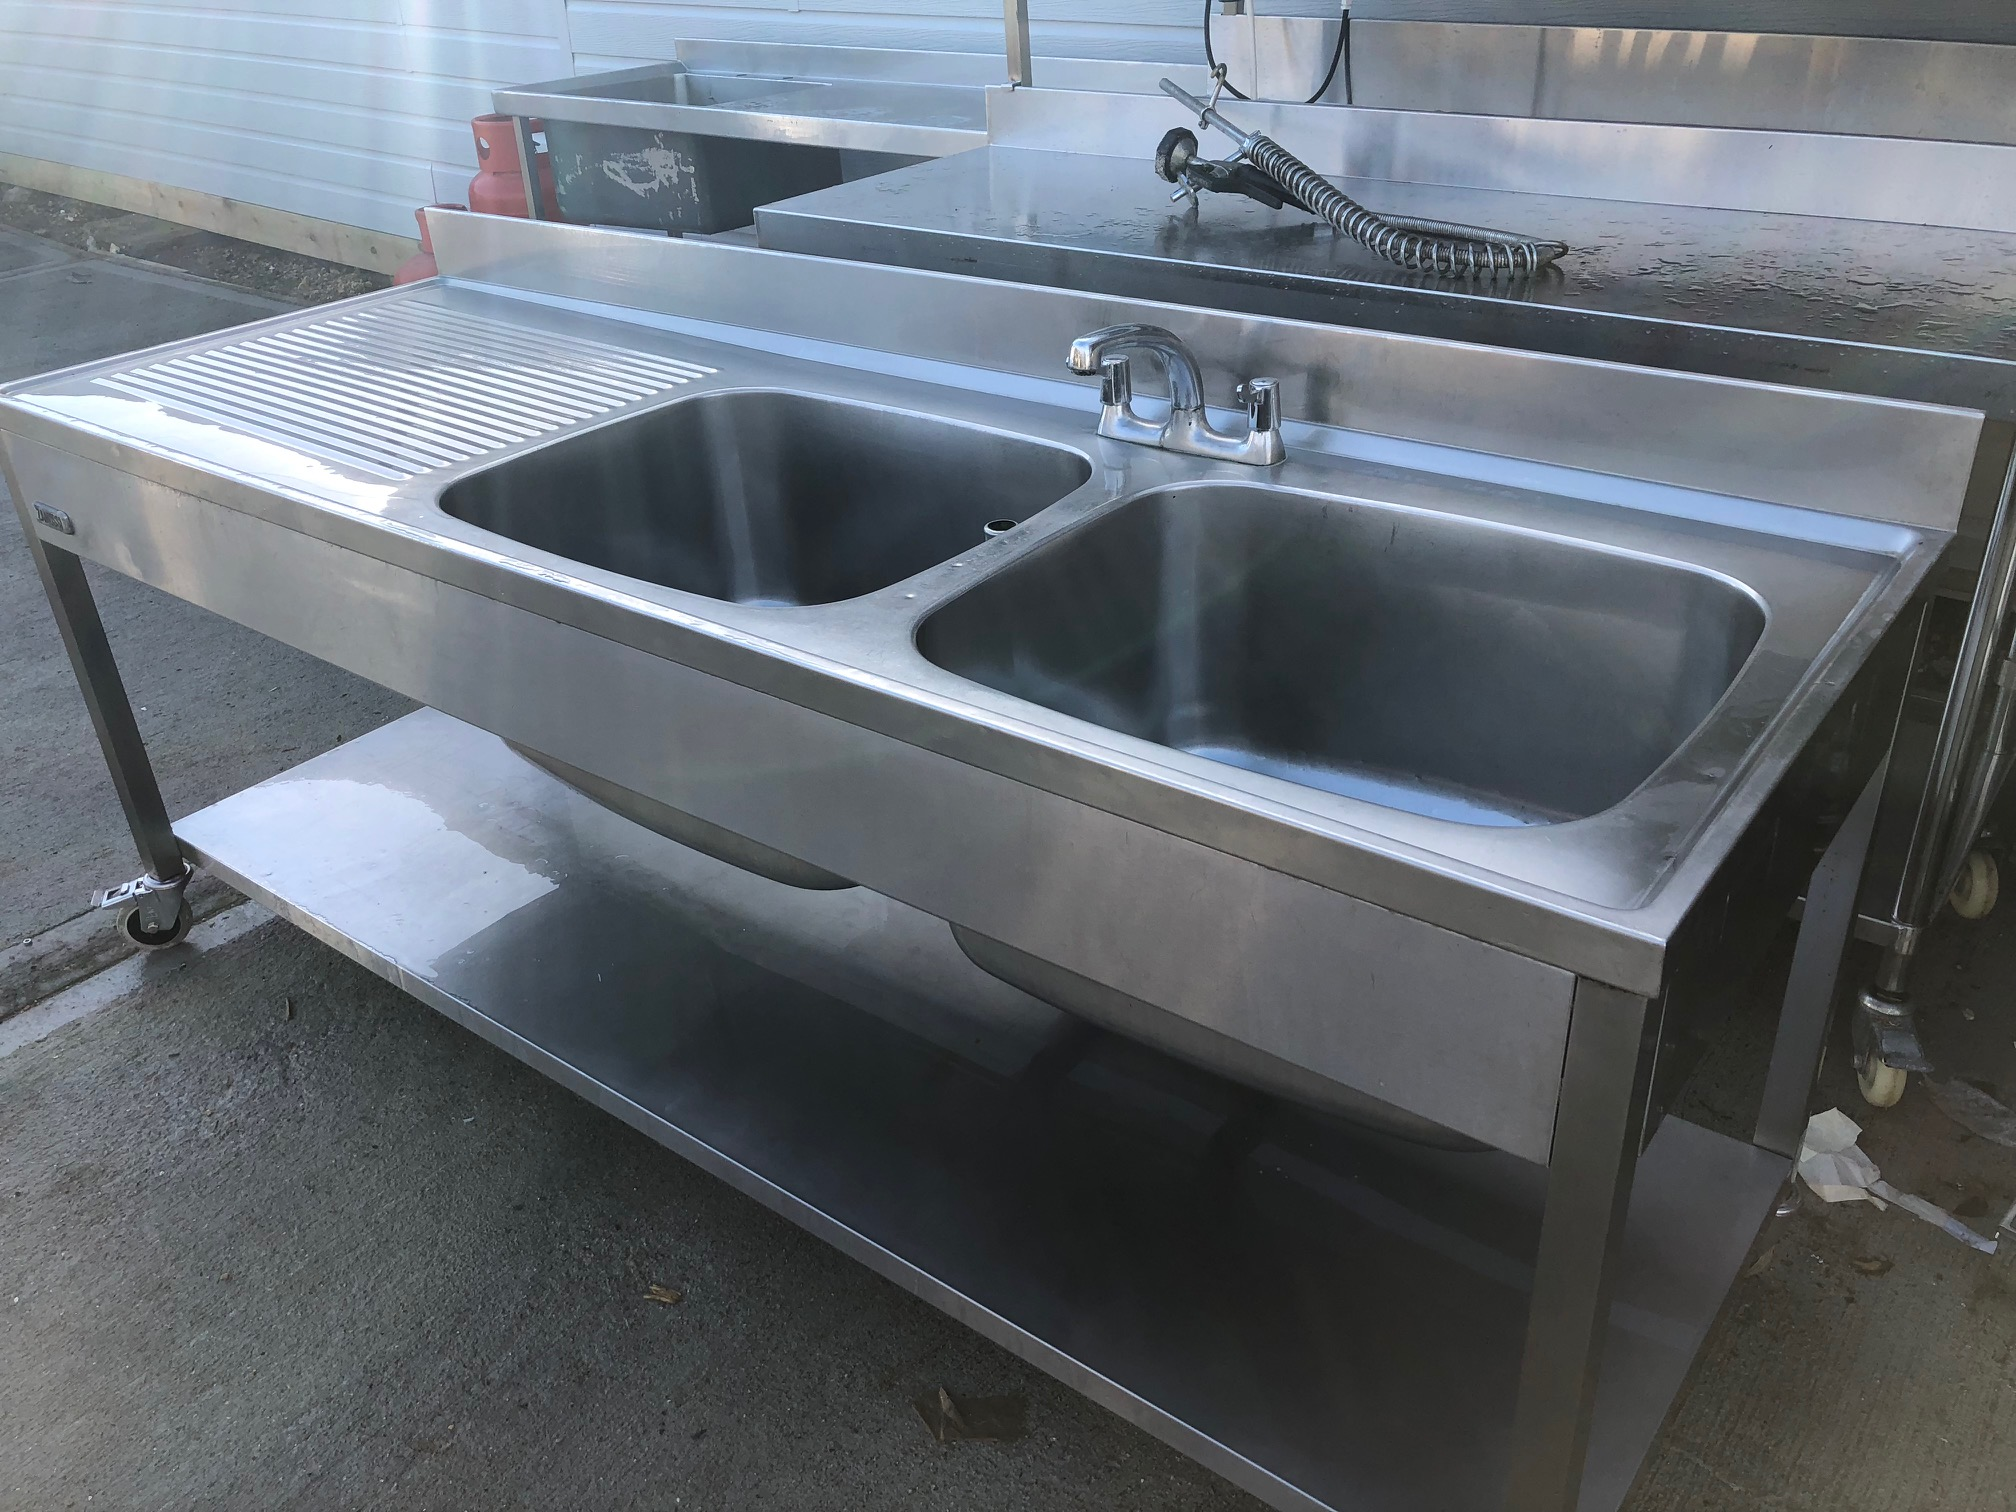 Stainless Steel Commercial Sink With 2 Big Bowls With Self